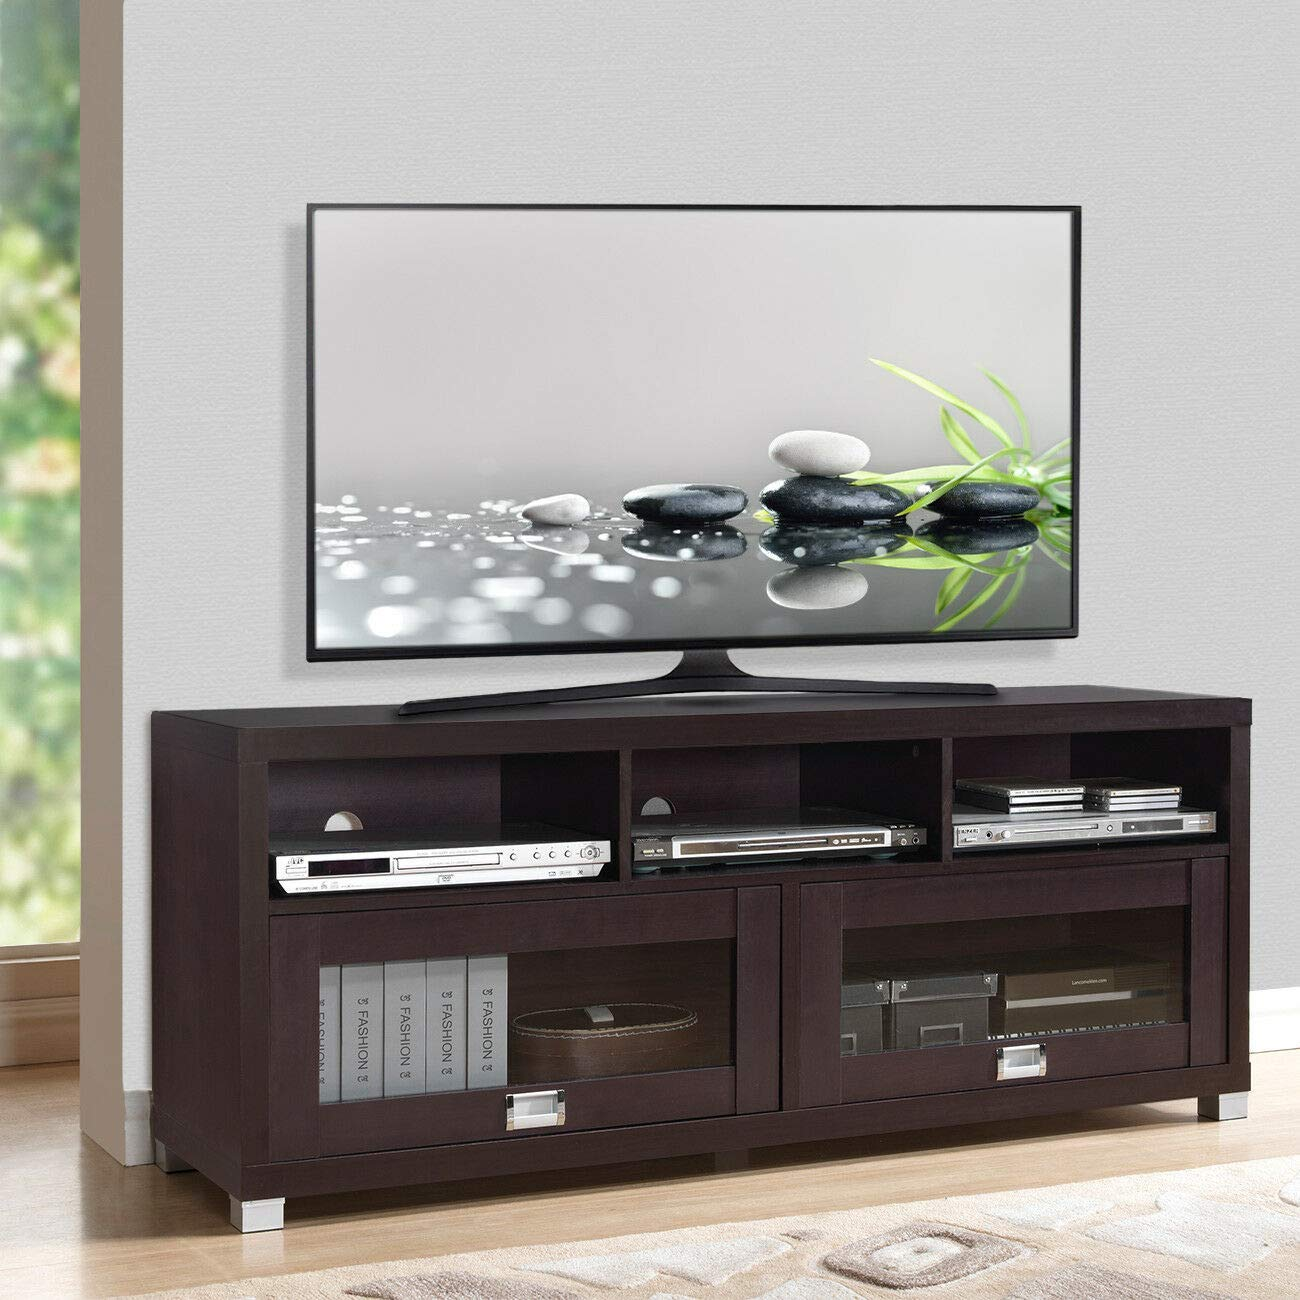 Overwhelmingly Stylish Ideas On Storage Furniture TV Solutions